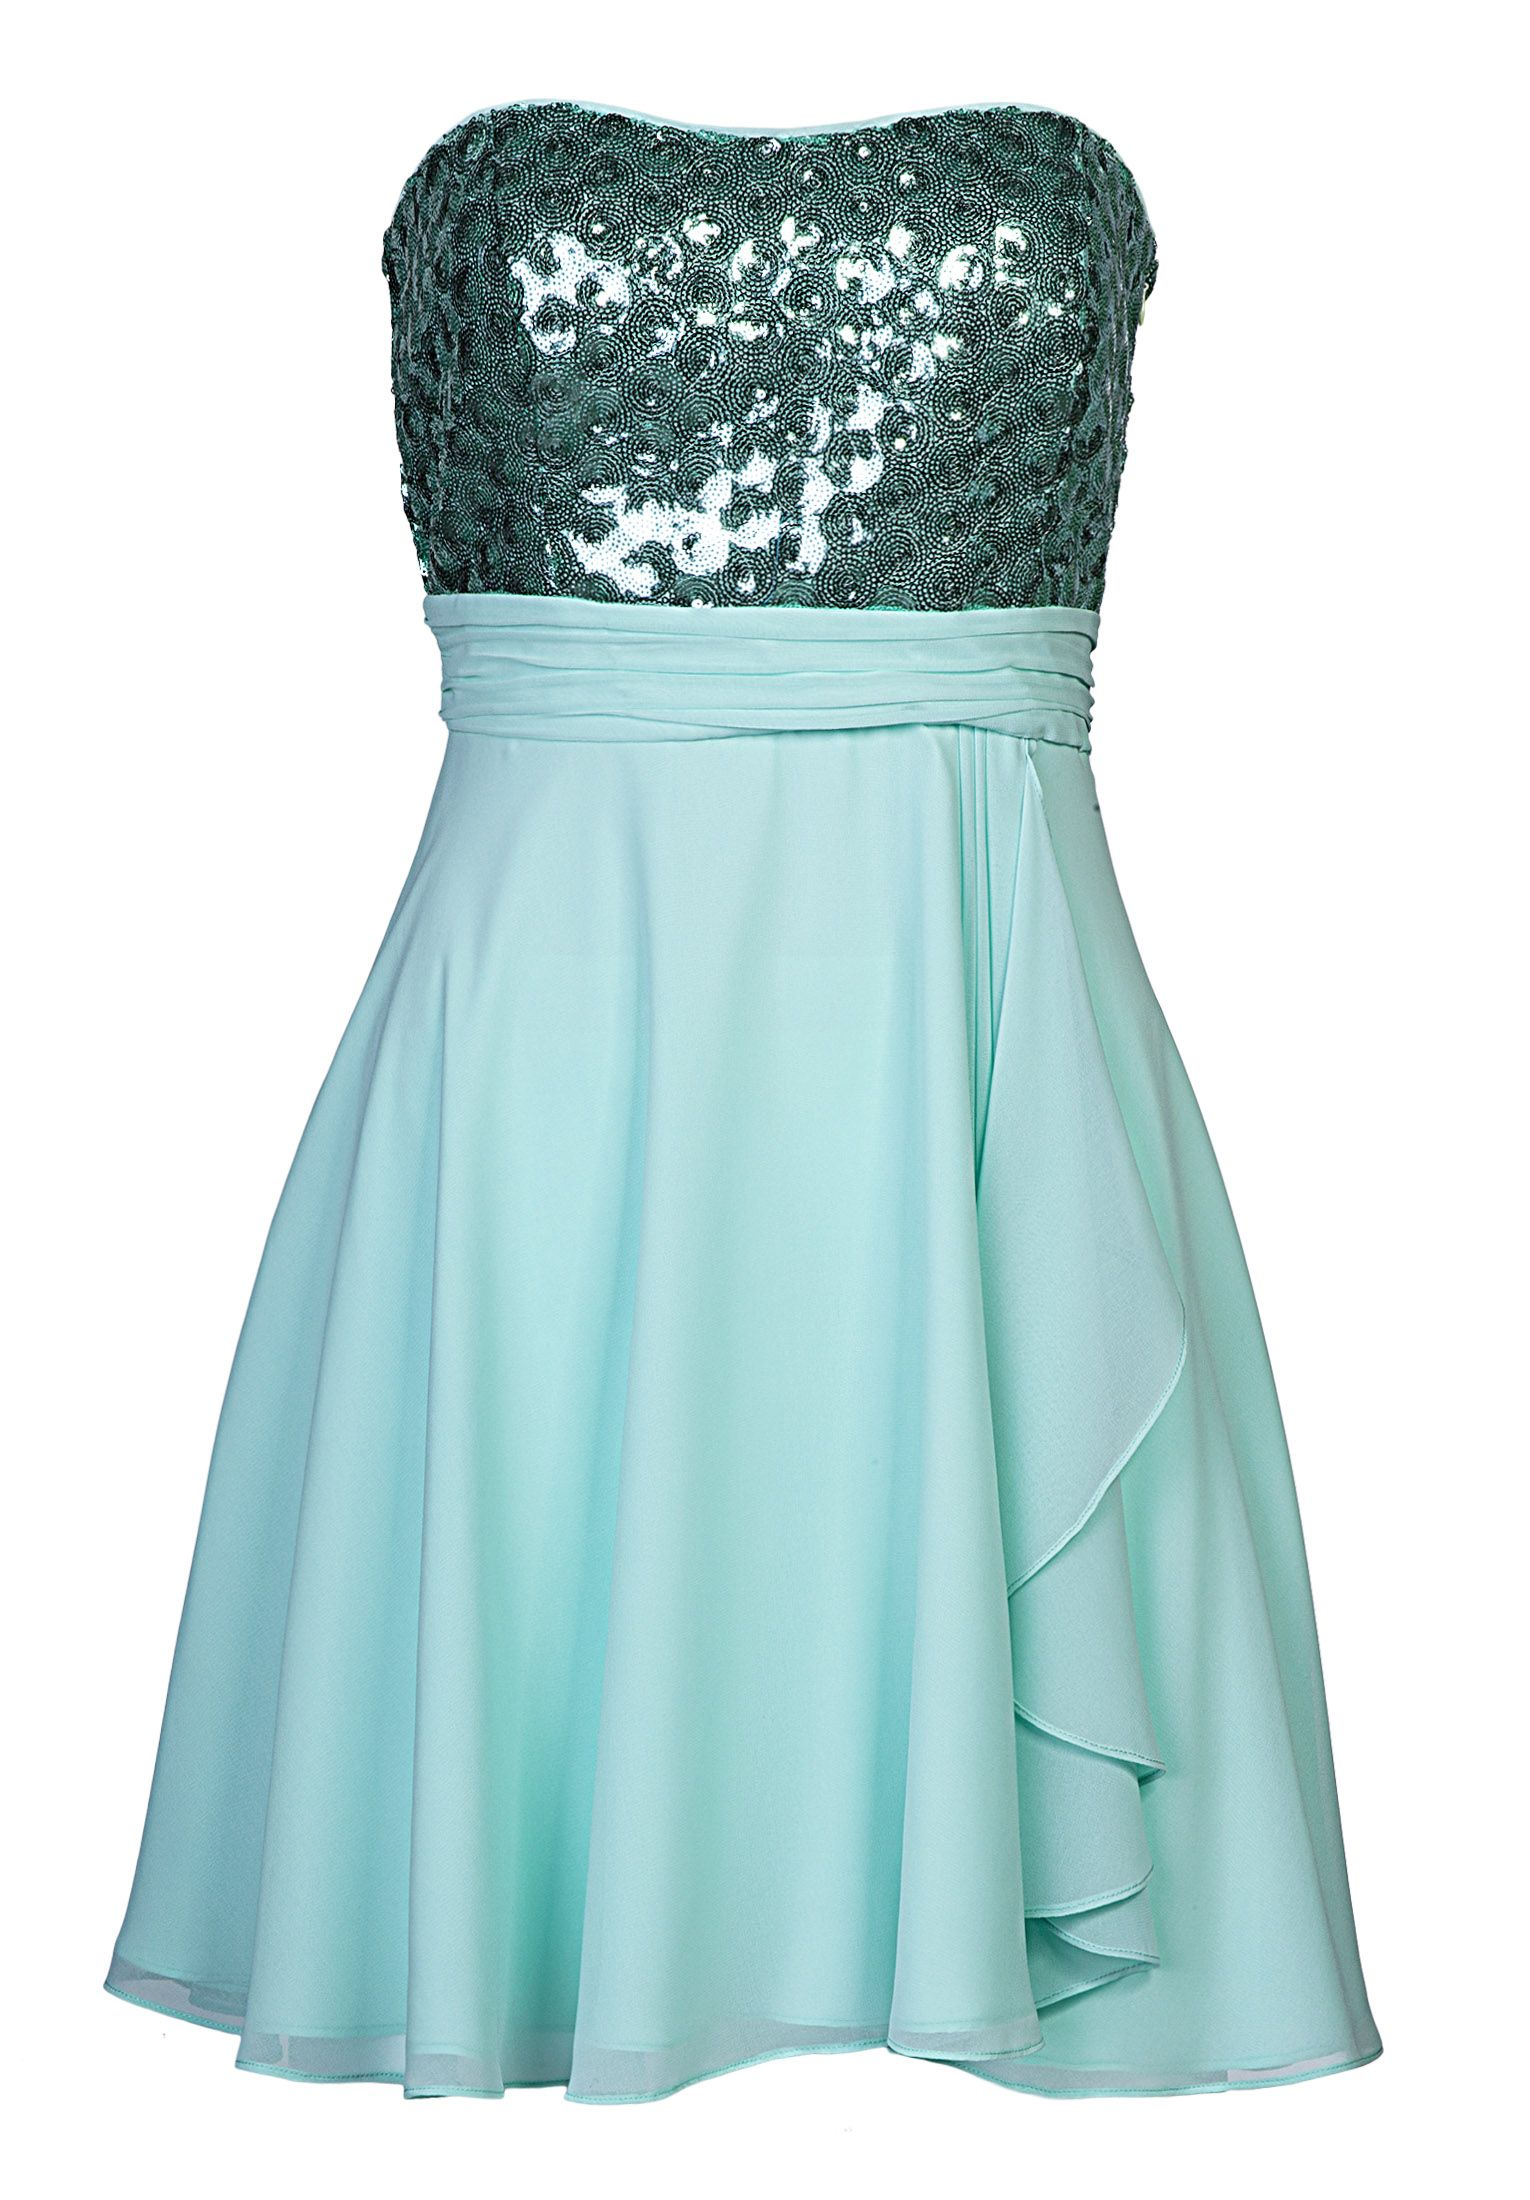 Chiffonkleid - mint | Dress outfits